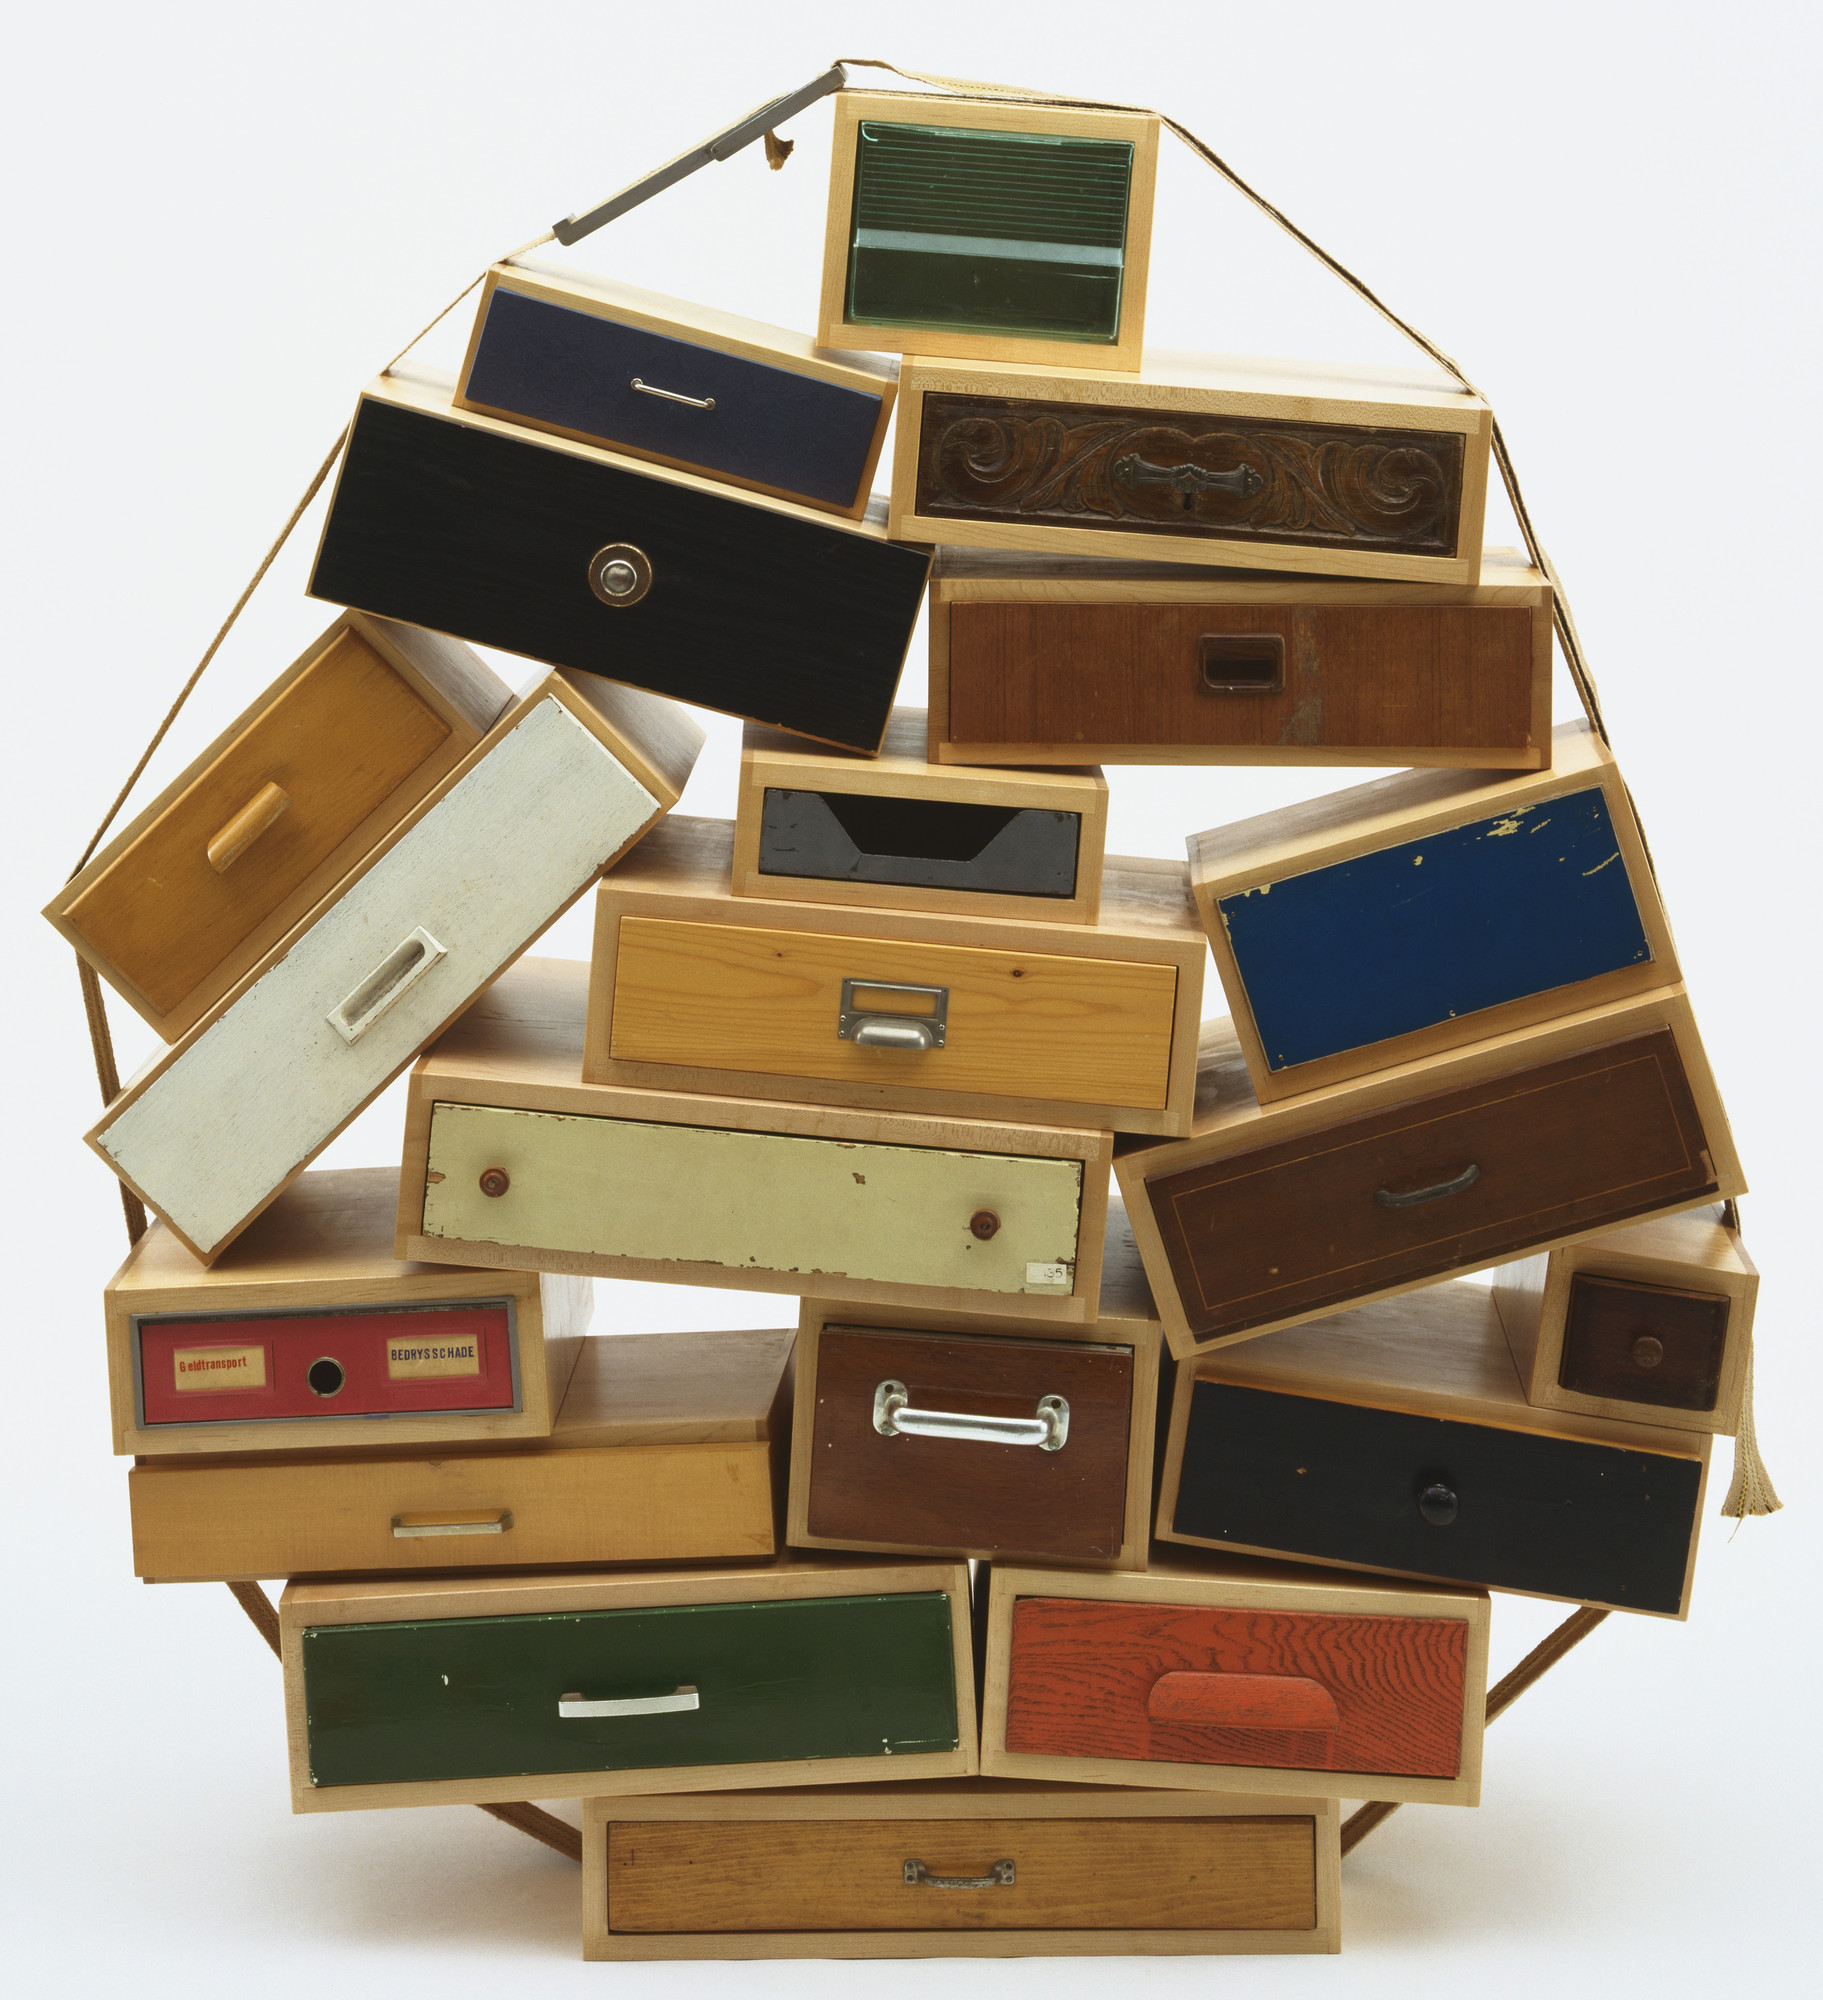 buy online cab32 f79f1 Tejo Remy. 'You Can't Lay Down Your Memory' Chest of Drawers ...